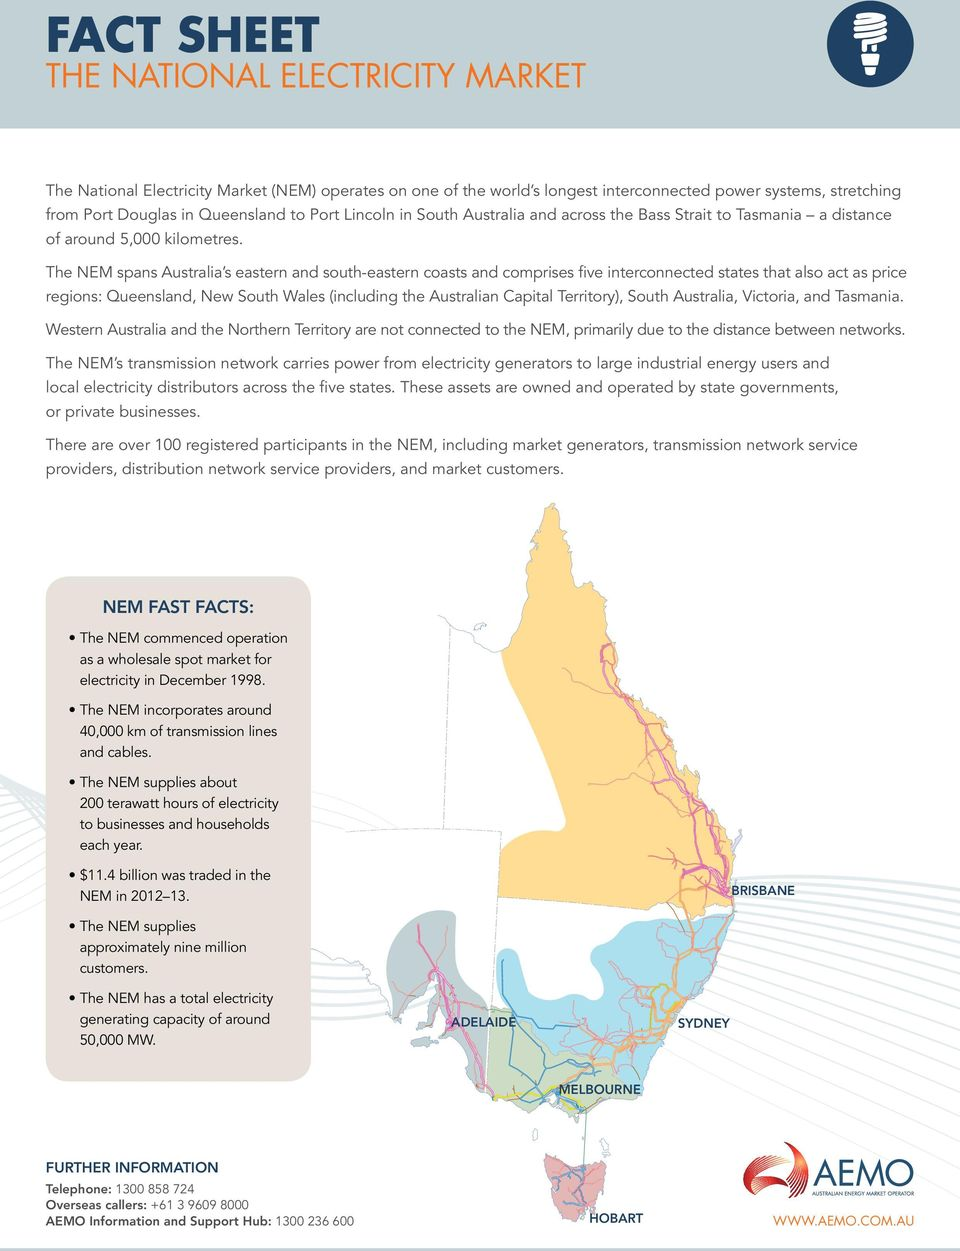 The NEM spans Australia s eastern and south-eastern coasts and comprises five interconnected states that also act as price regions: Queensland, New South Wales (including the Australian Capital